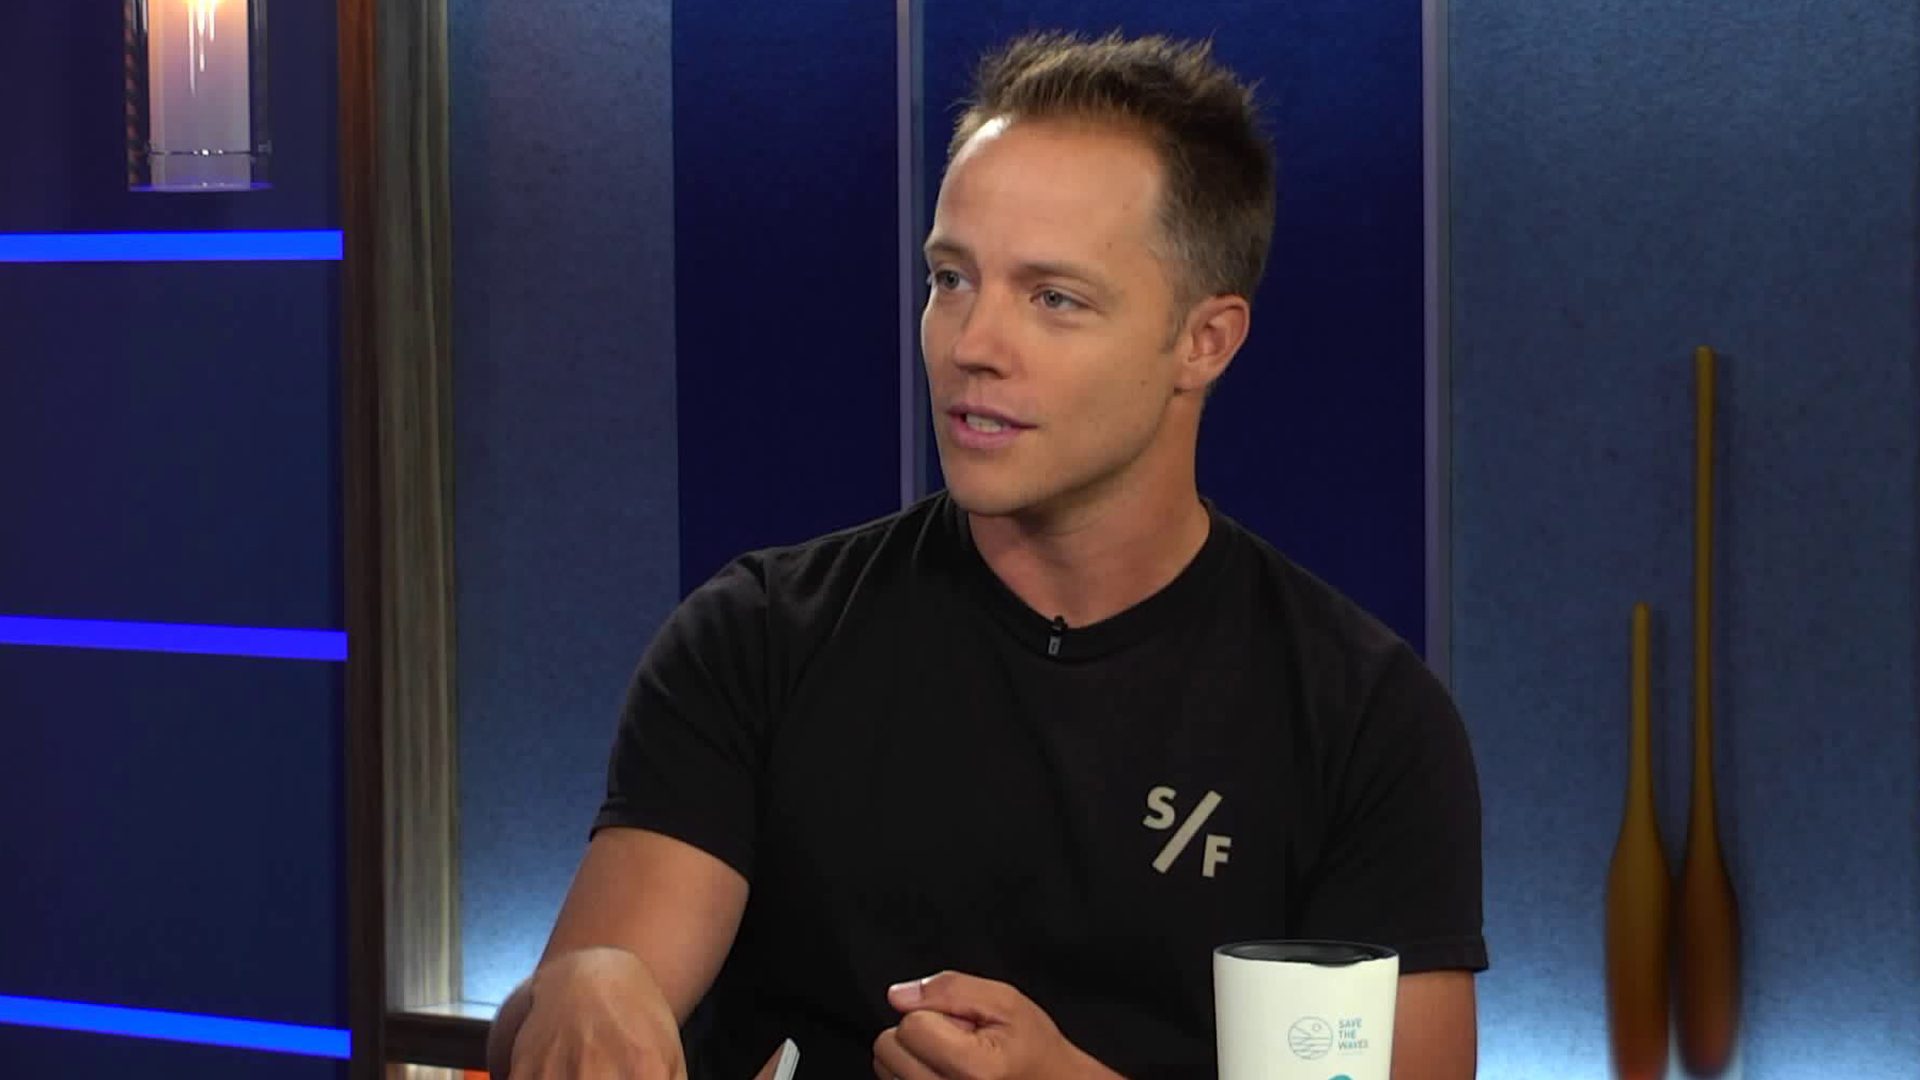 Graham Hamilton, chairman of Surfrider Foundation's L.A. chapter, discusses beach cleanups during an appearance on KTLA 5 Live on Aug. 6, 2018. (Credit: KTLA)